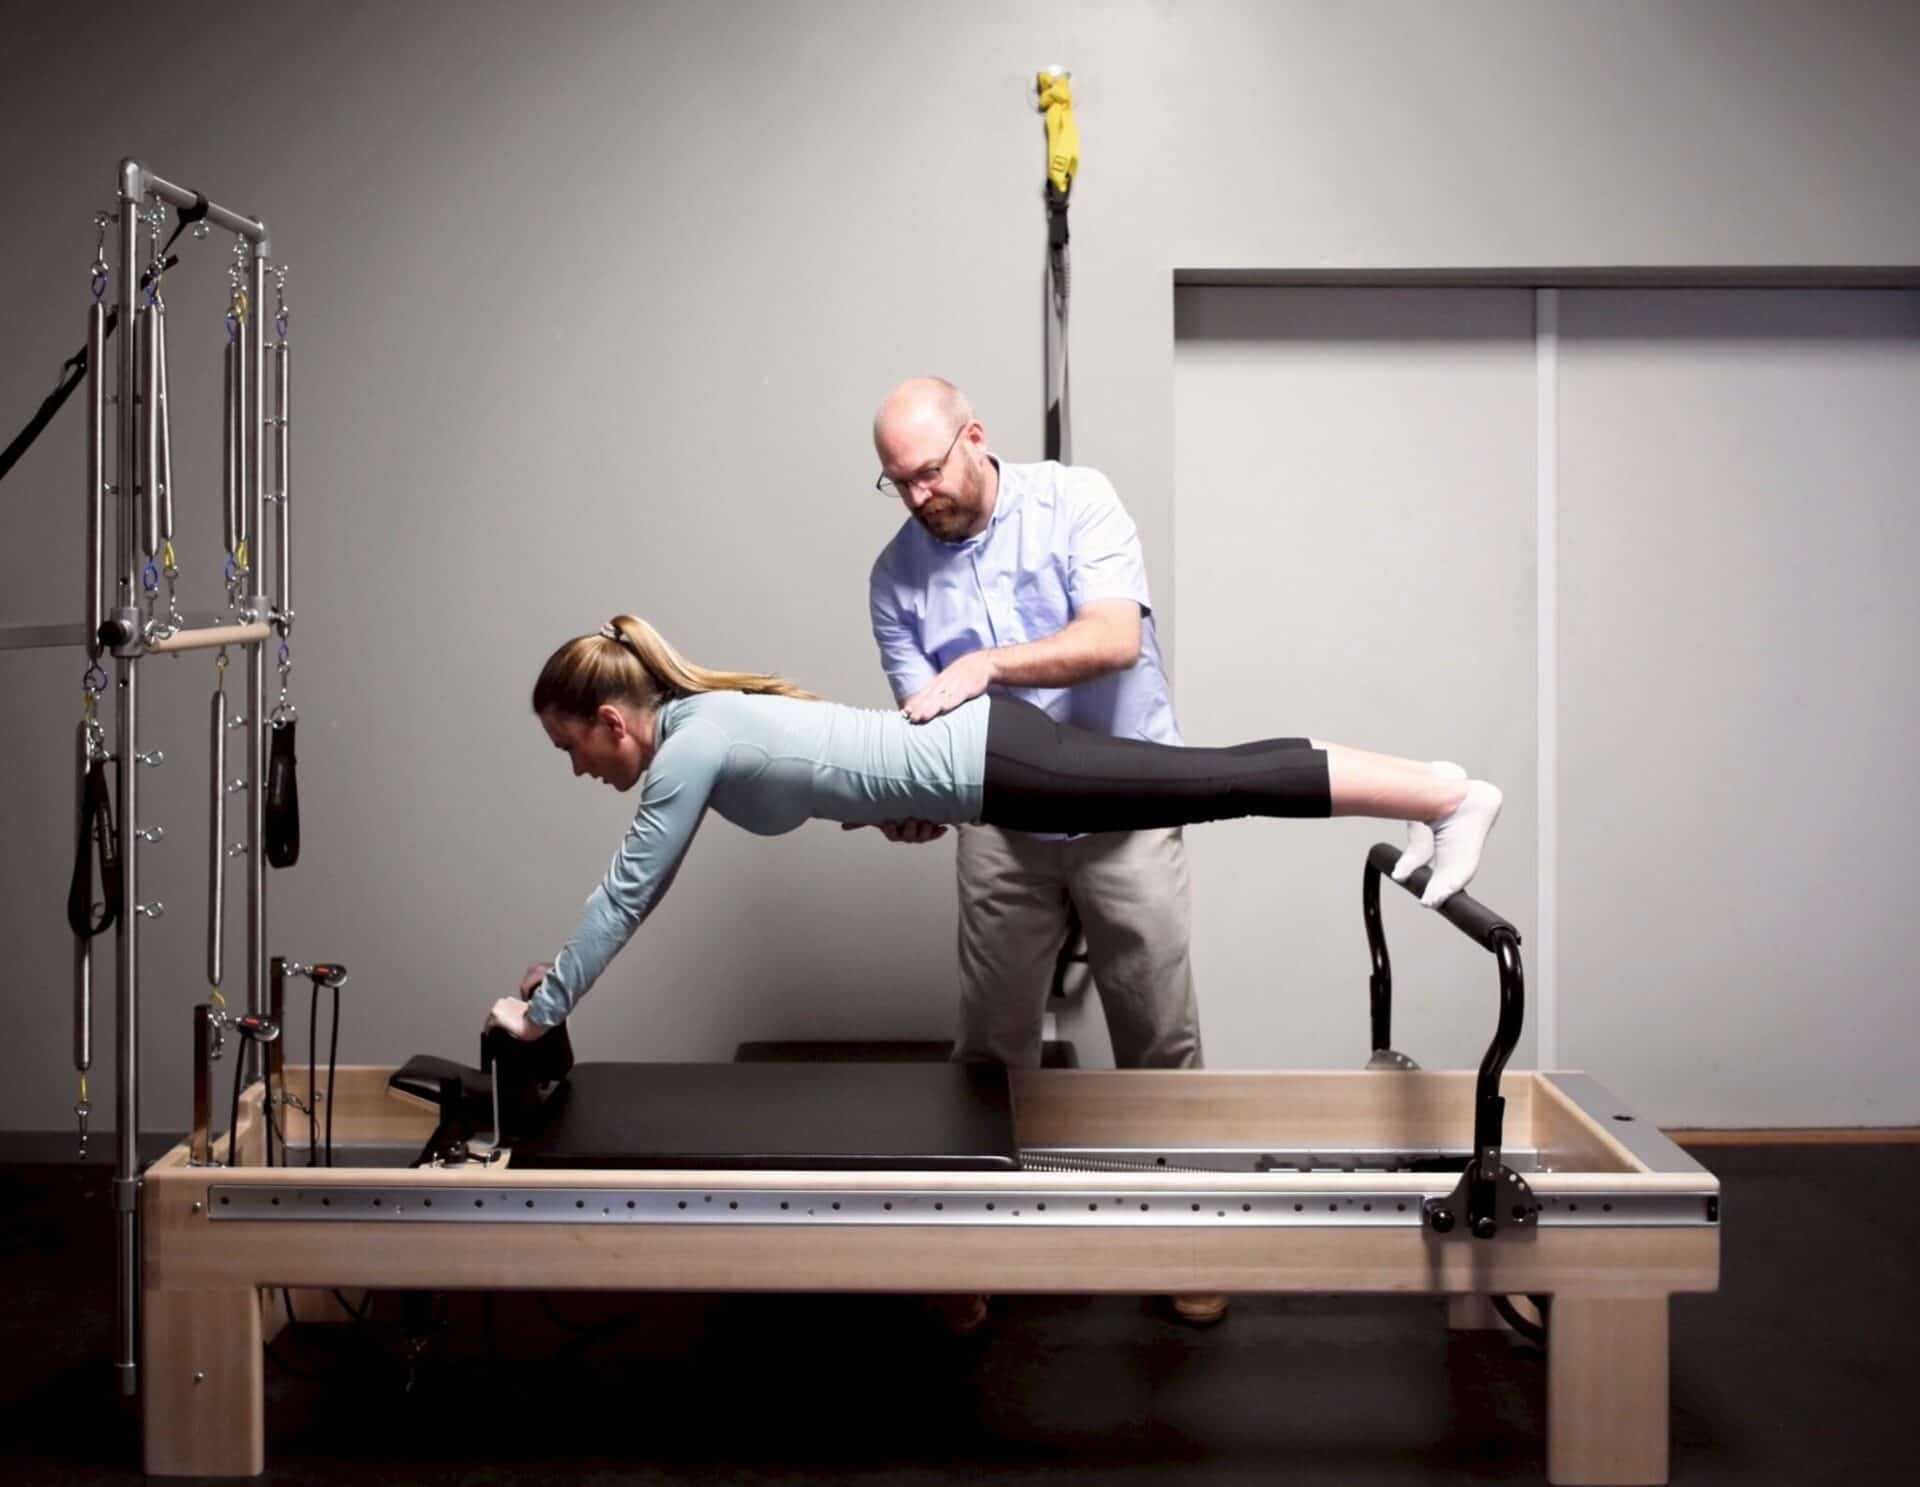 Doctor of physical therapy using pilates reformer to help improve posture and core stability.